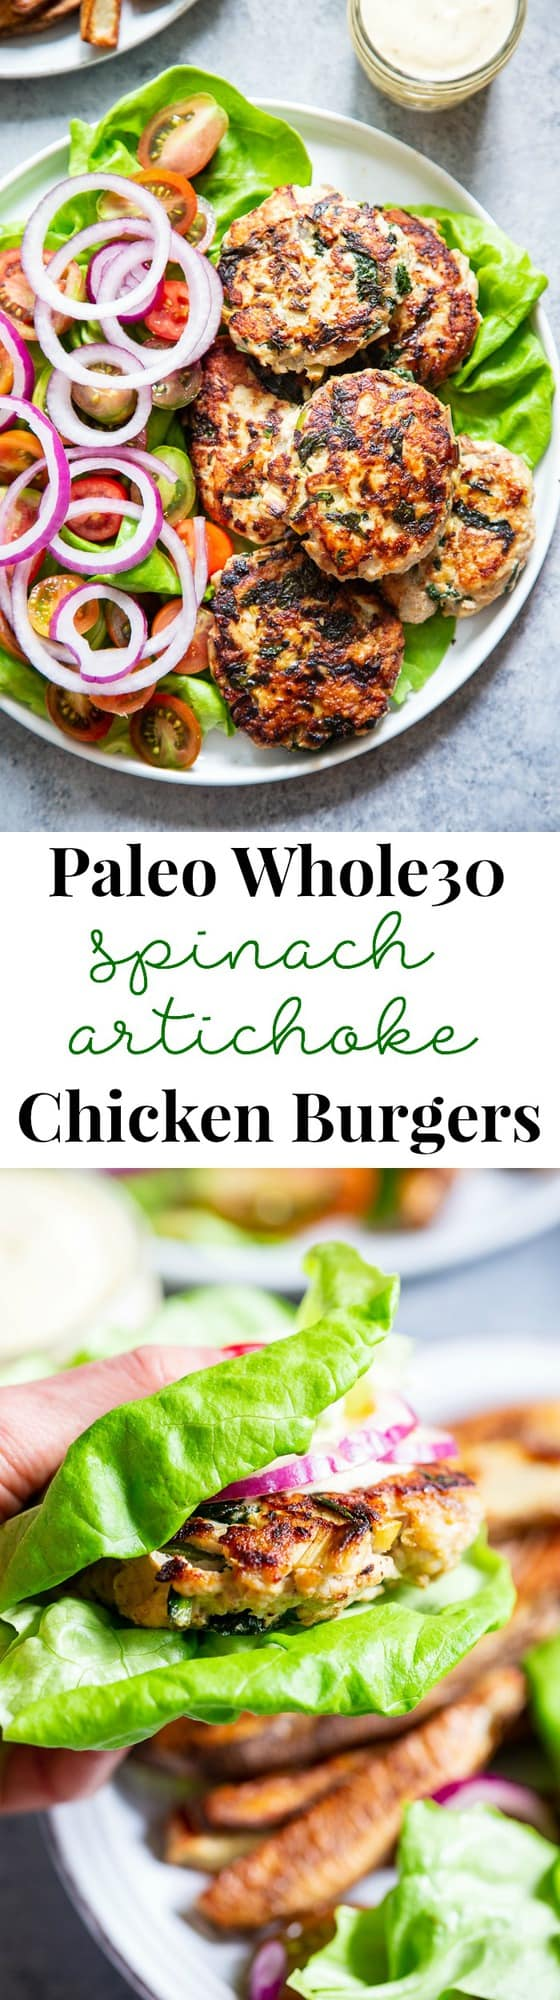 These chicken burgers are packed with veggies and tons of flavor!  A savory spinach artichoke mixture is added to the burgers before they're grilled and topped with more goodies!  Whole30, paleo, and keto friendly.  A healthy way to break out of your burger rut!